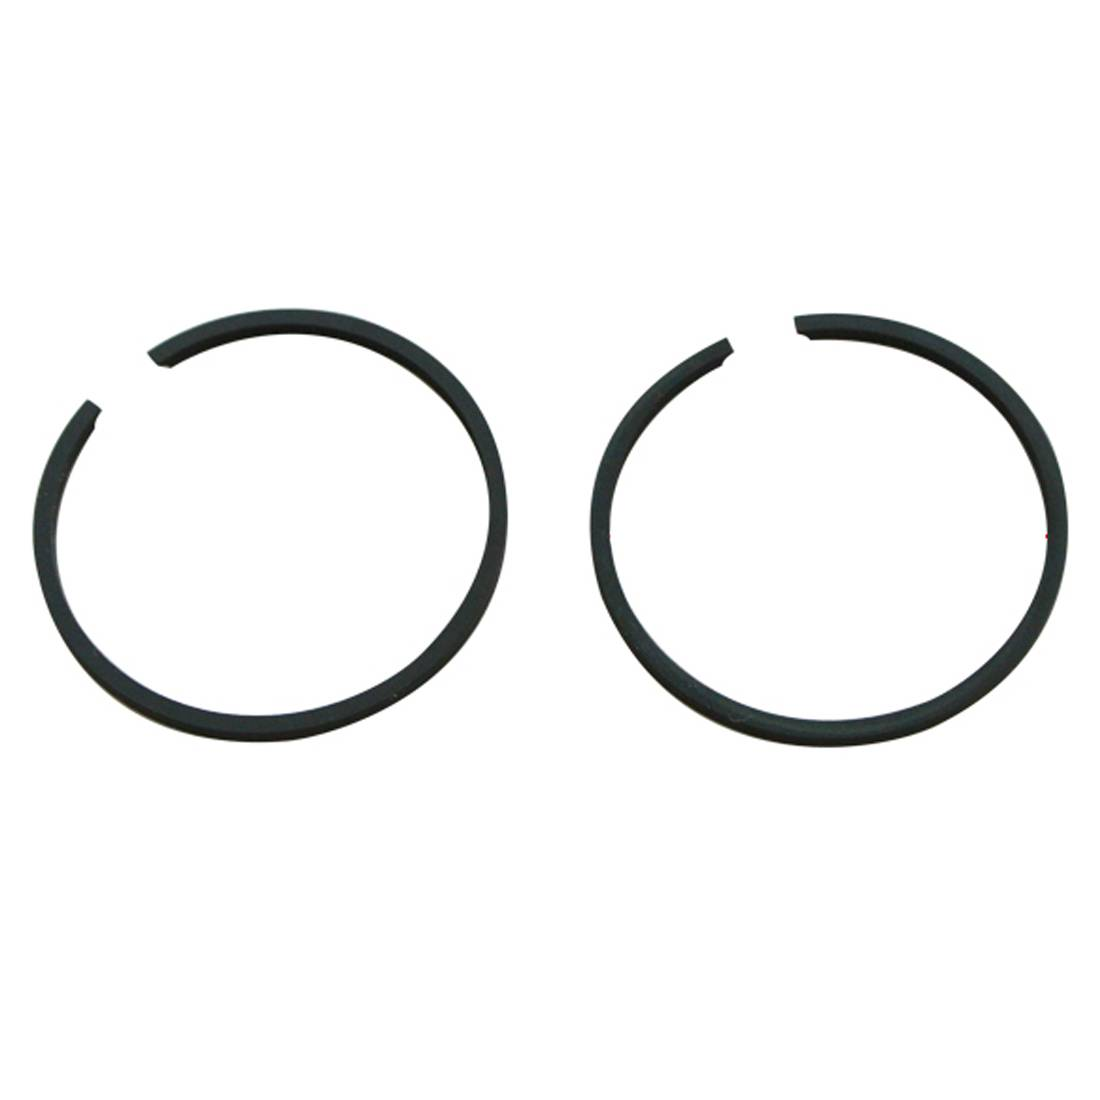 39mm Piston Rings Fit 49cc 50cc Motorized Bicycle